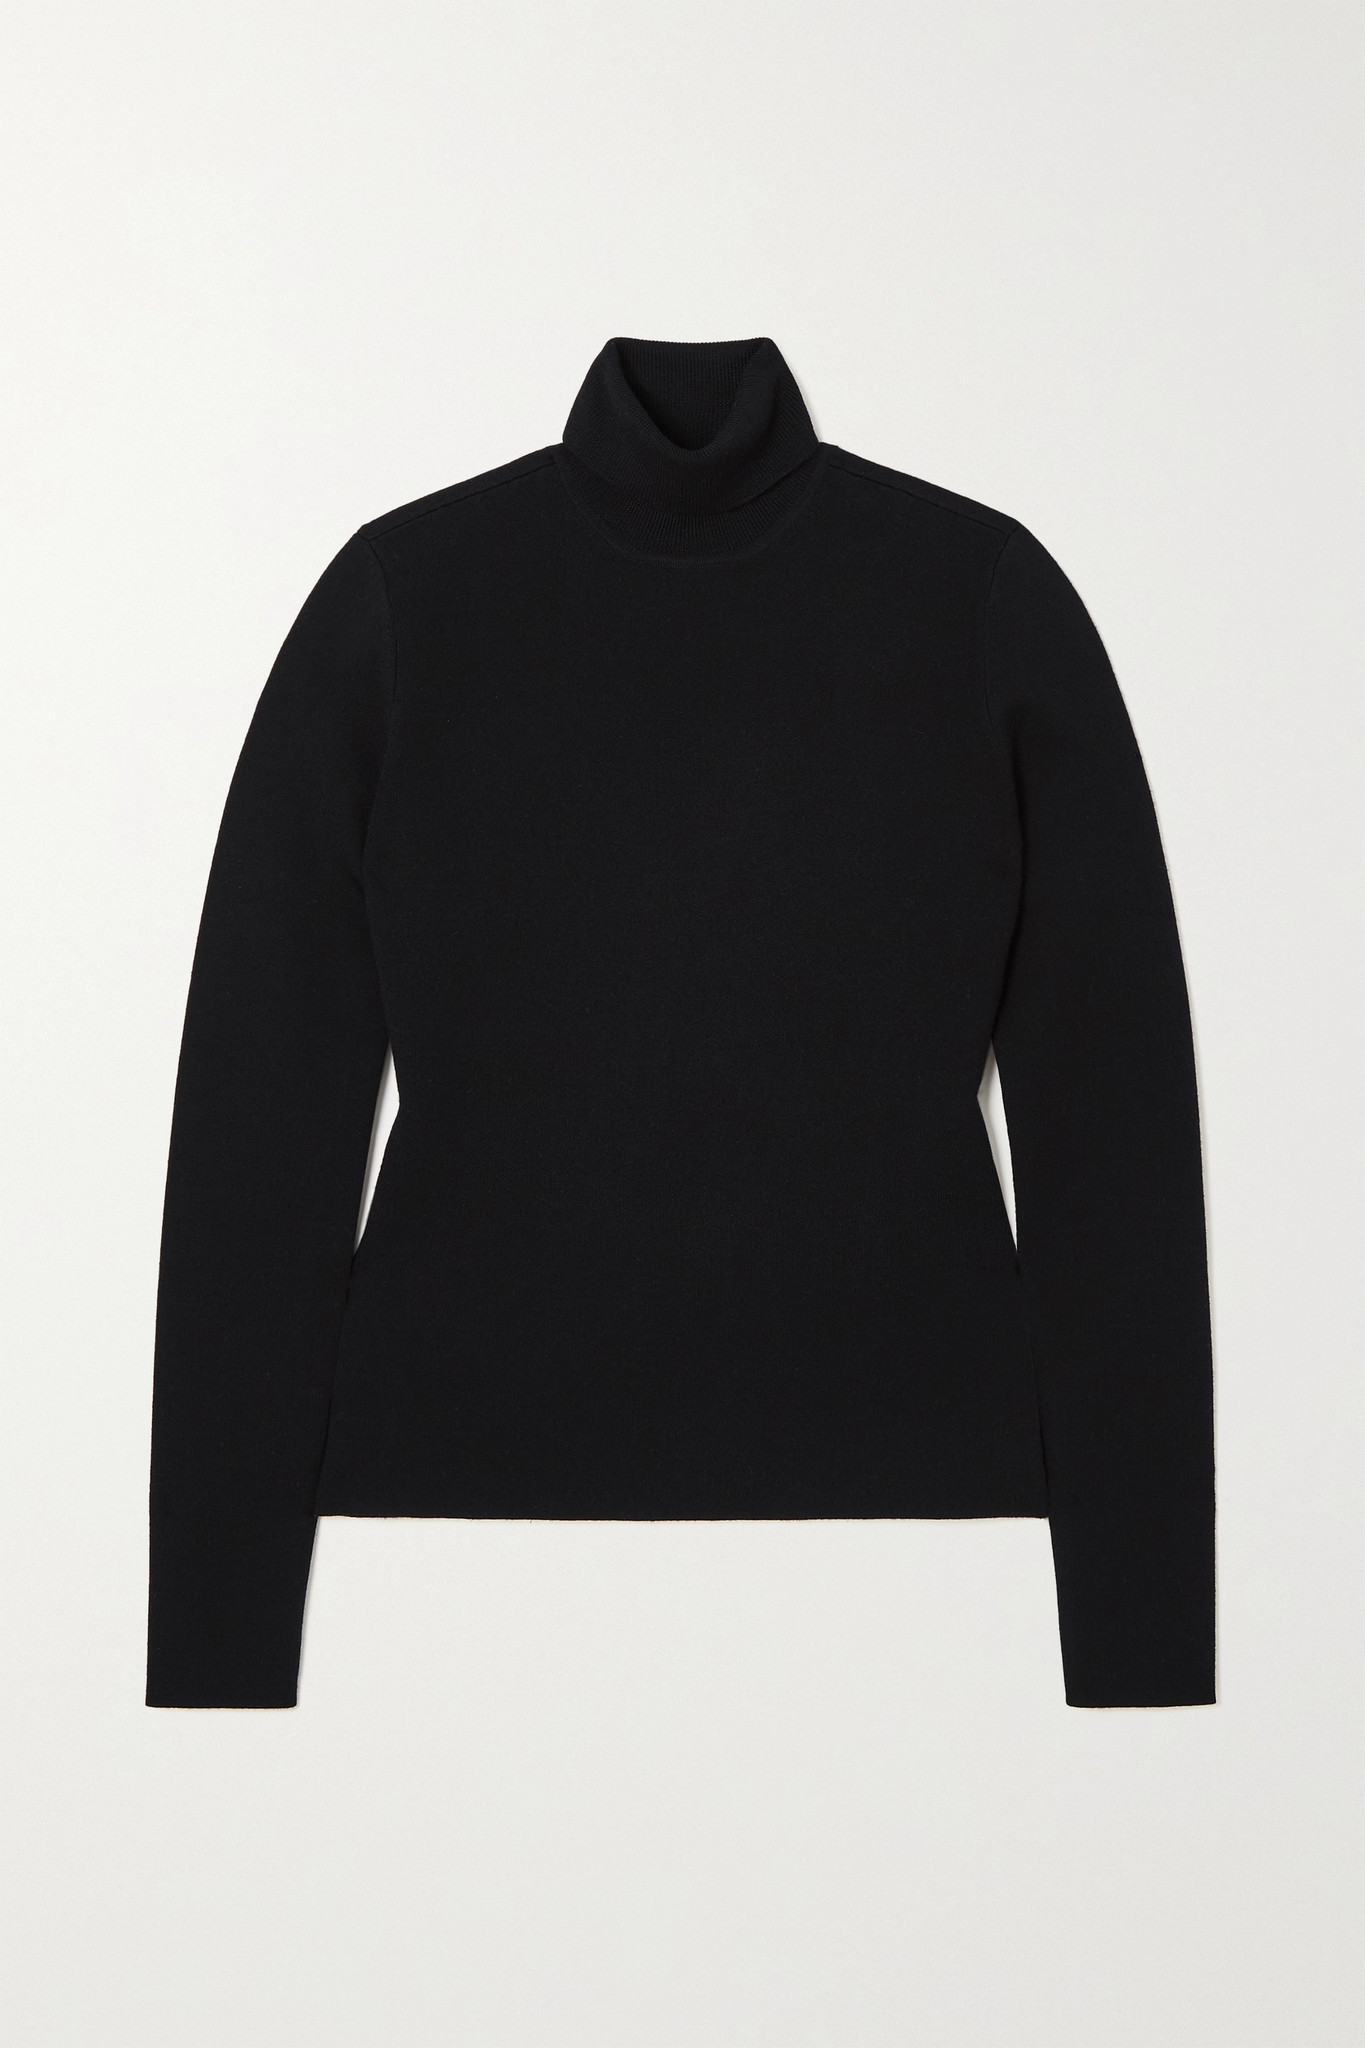 GABRIELA HEARST - May Wool, Cashmere And Silk-blend Turtleneck Sweater - Black - x small